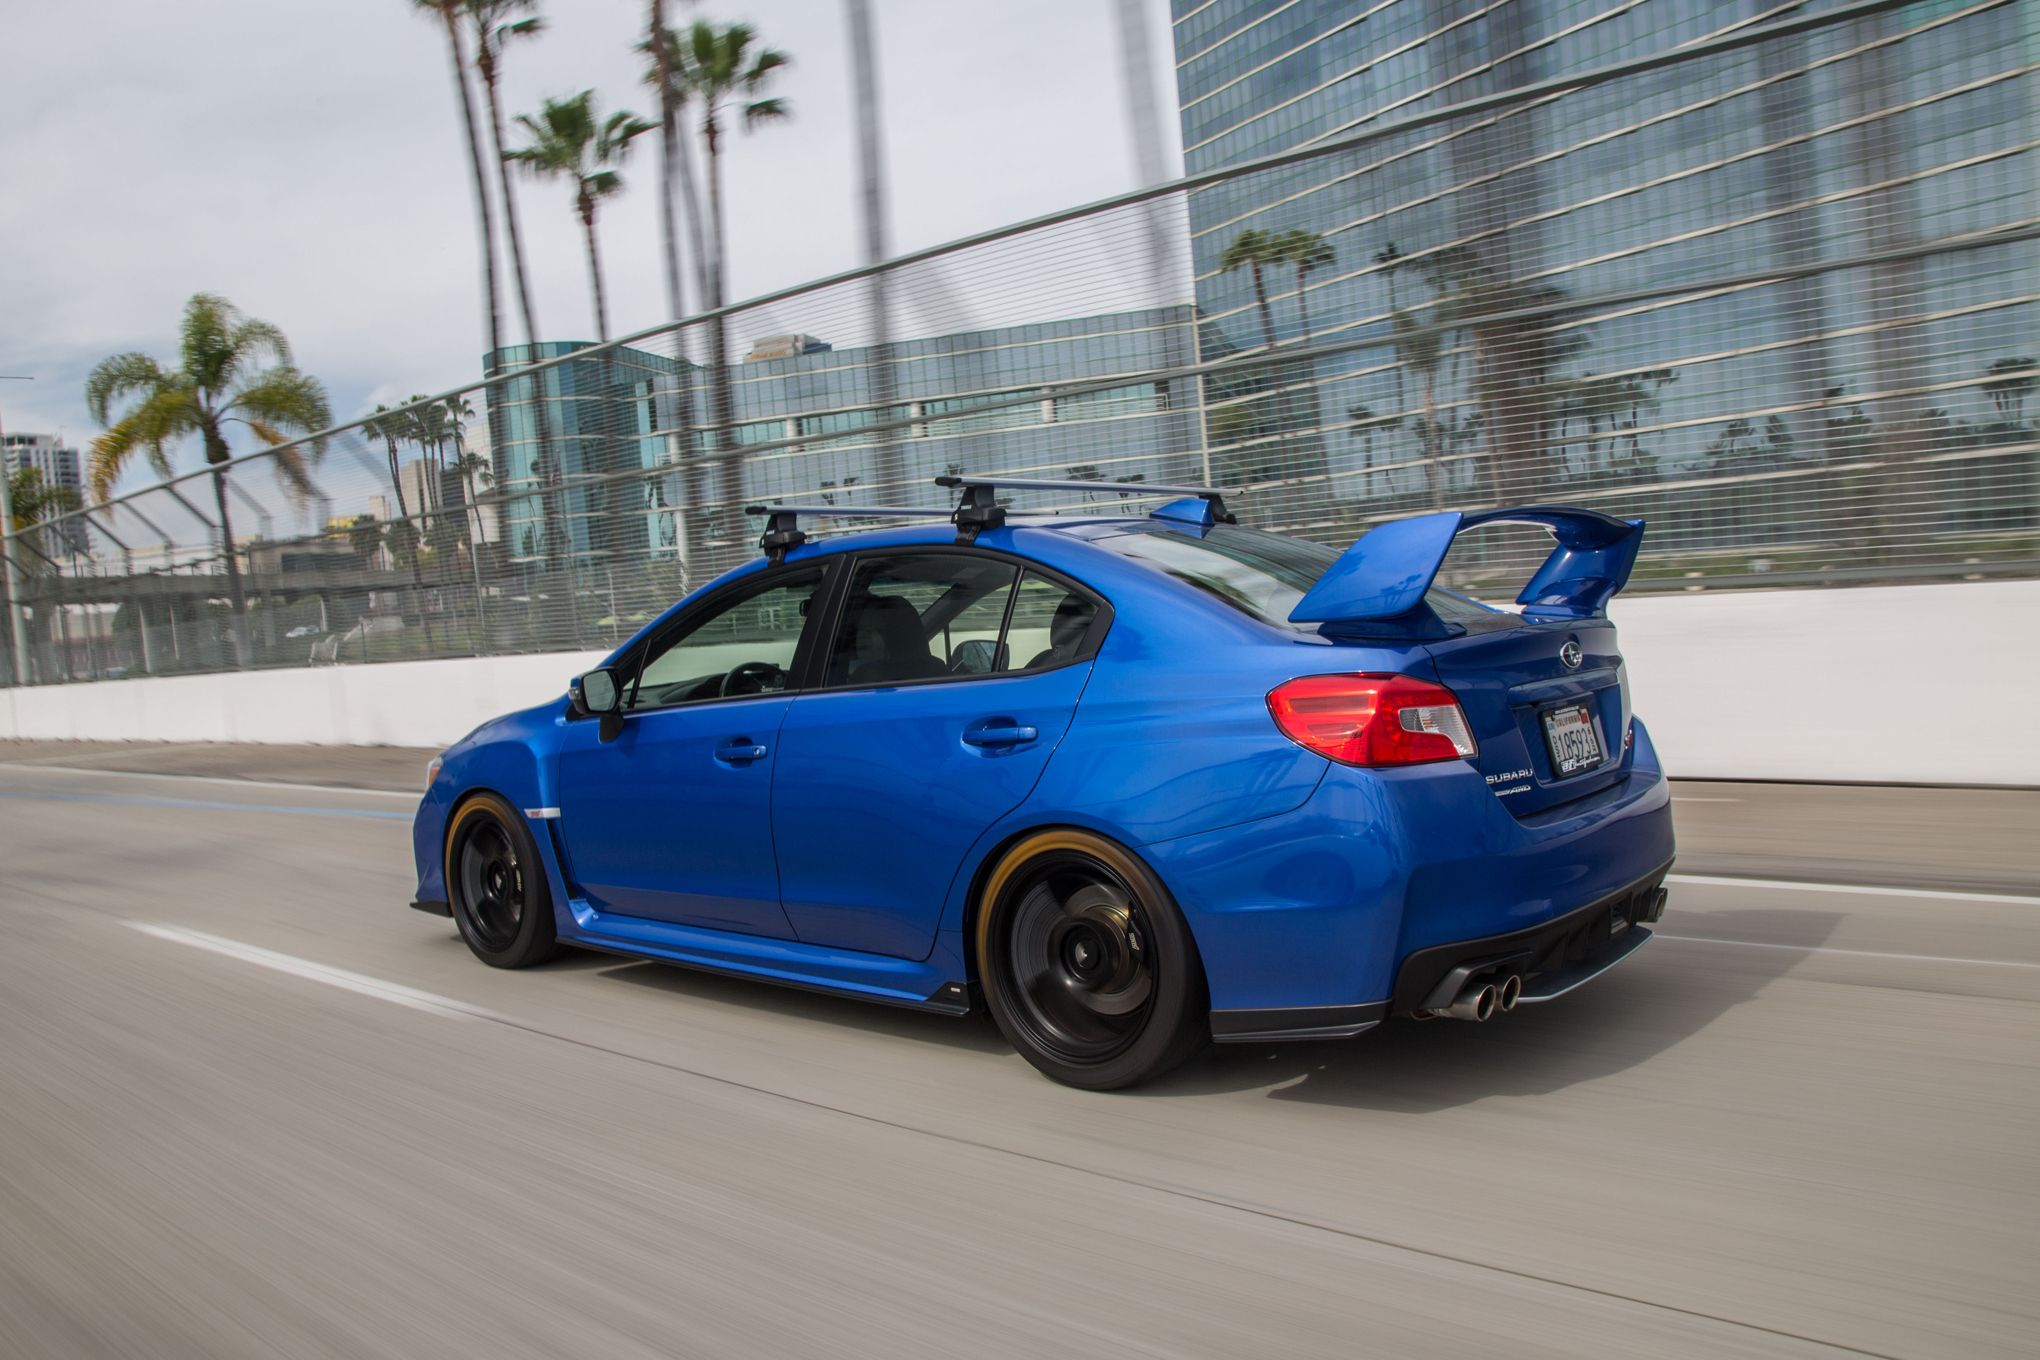 Roof Racks Waste 100 Million Gallons Of Gas Nationwide 2015 Subaru Wrx Subaru Wrx Roof Racks